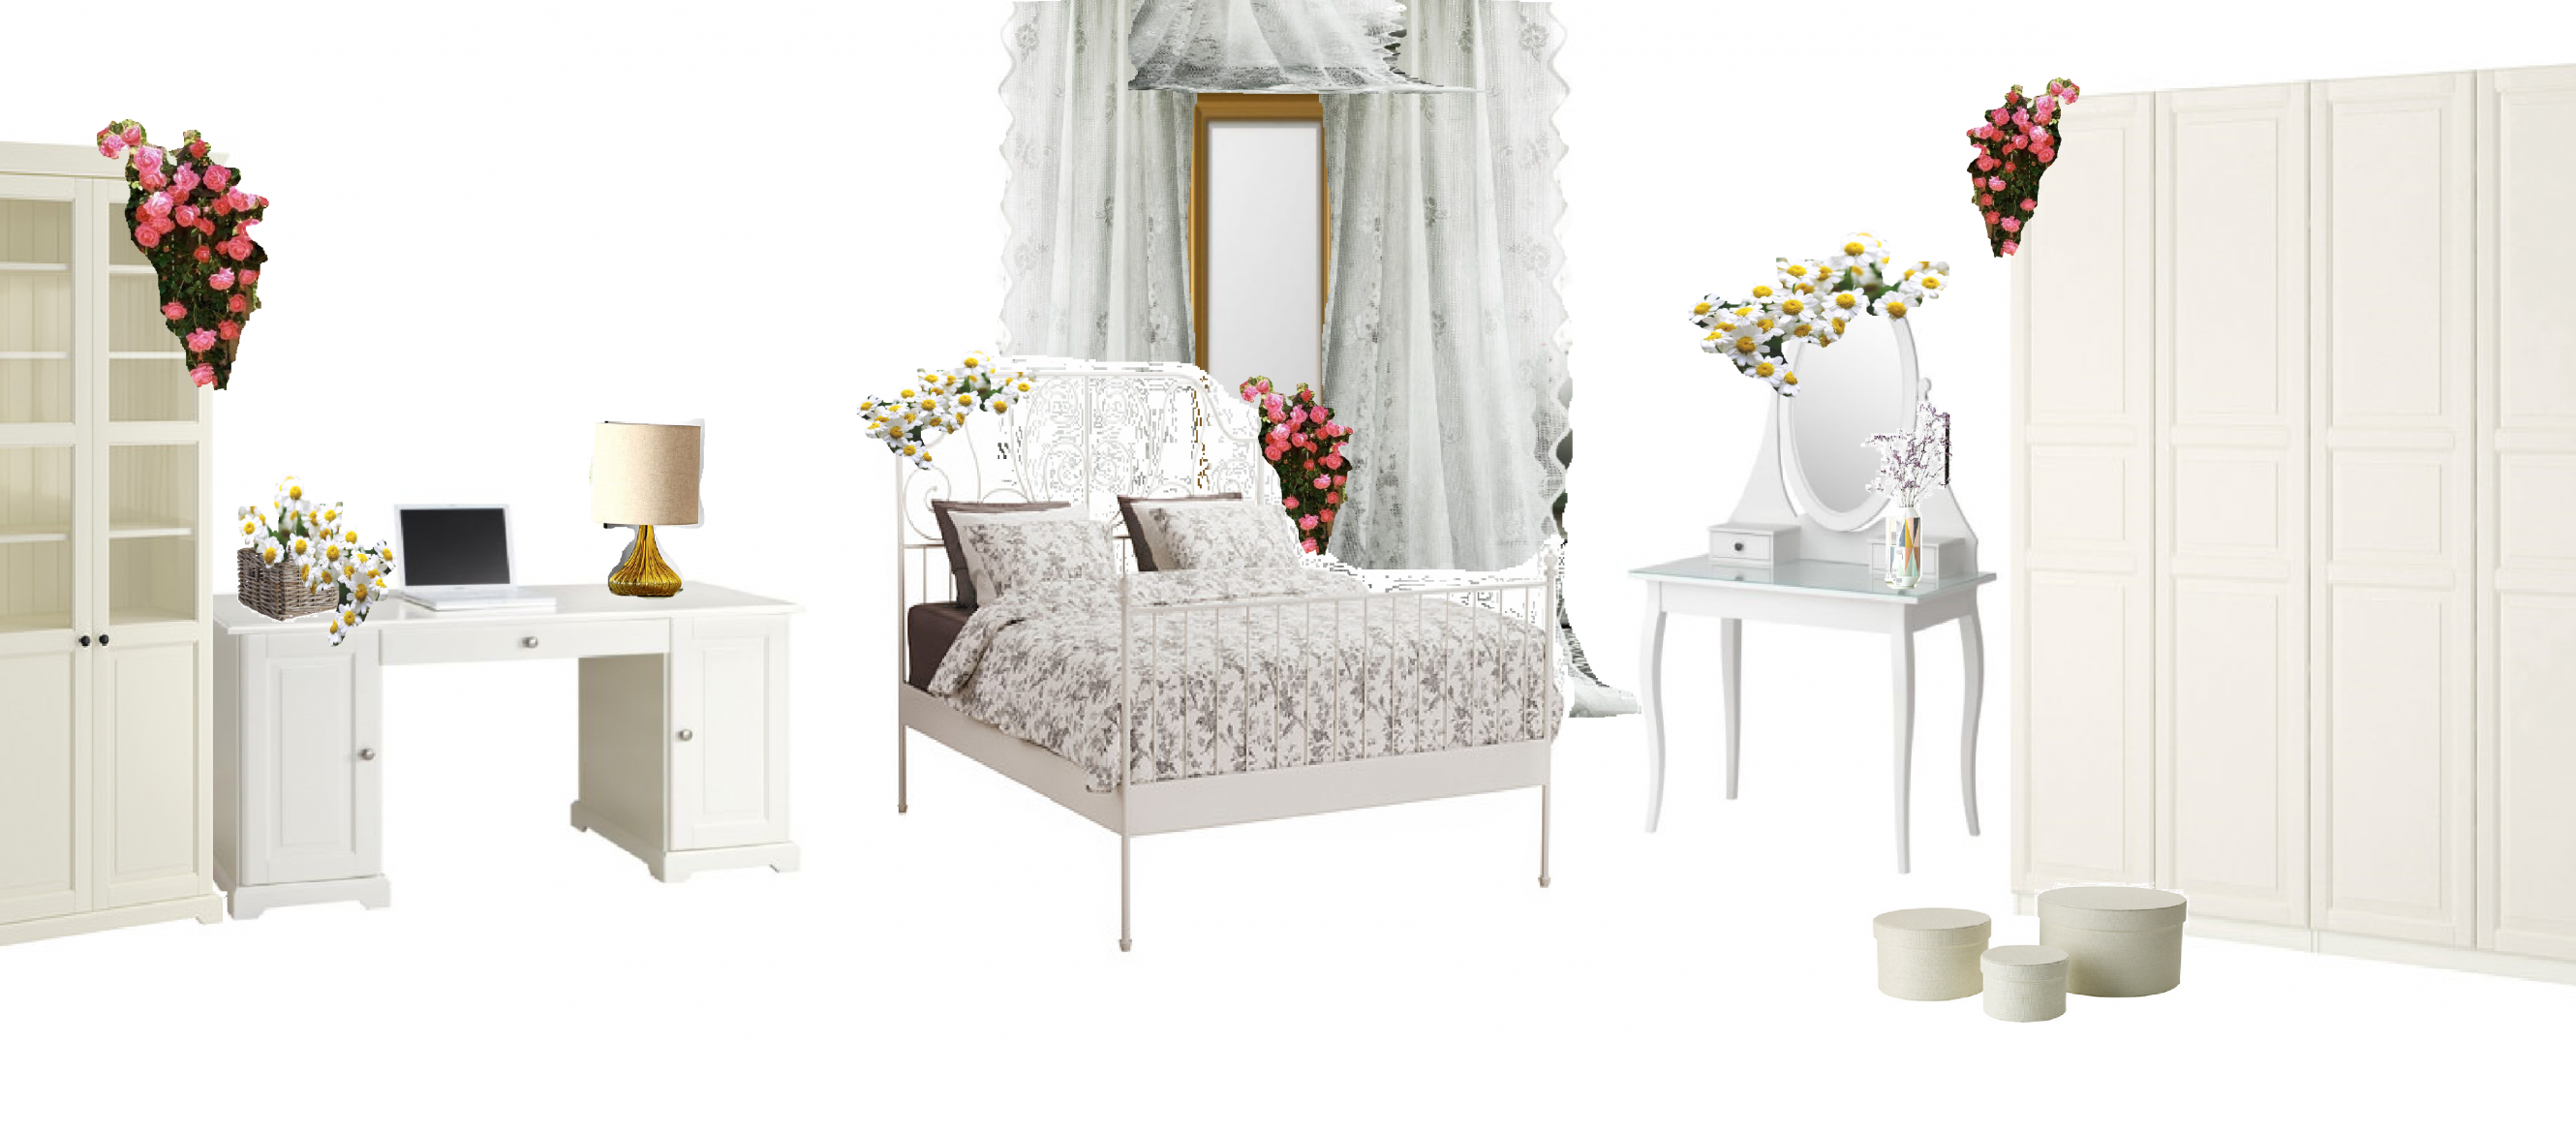 Collage of a room, styled in PHR style